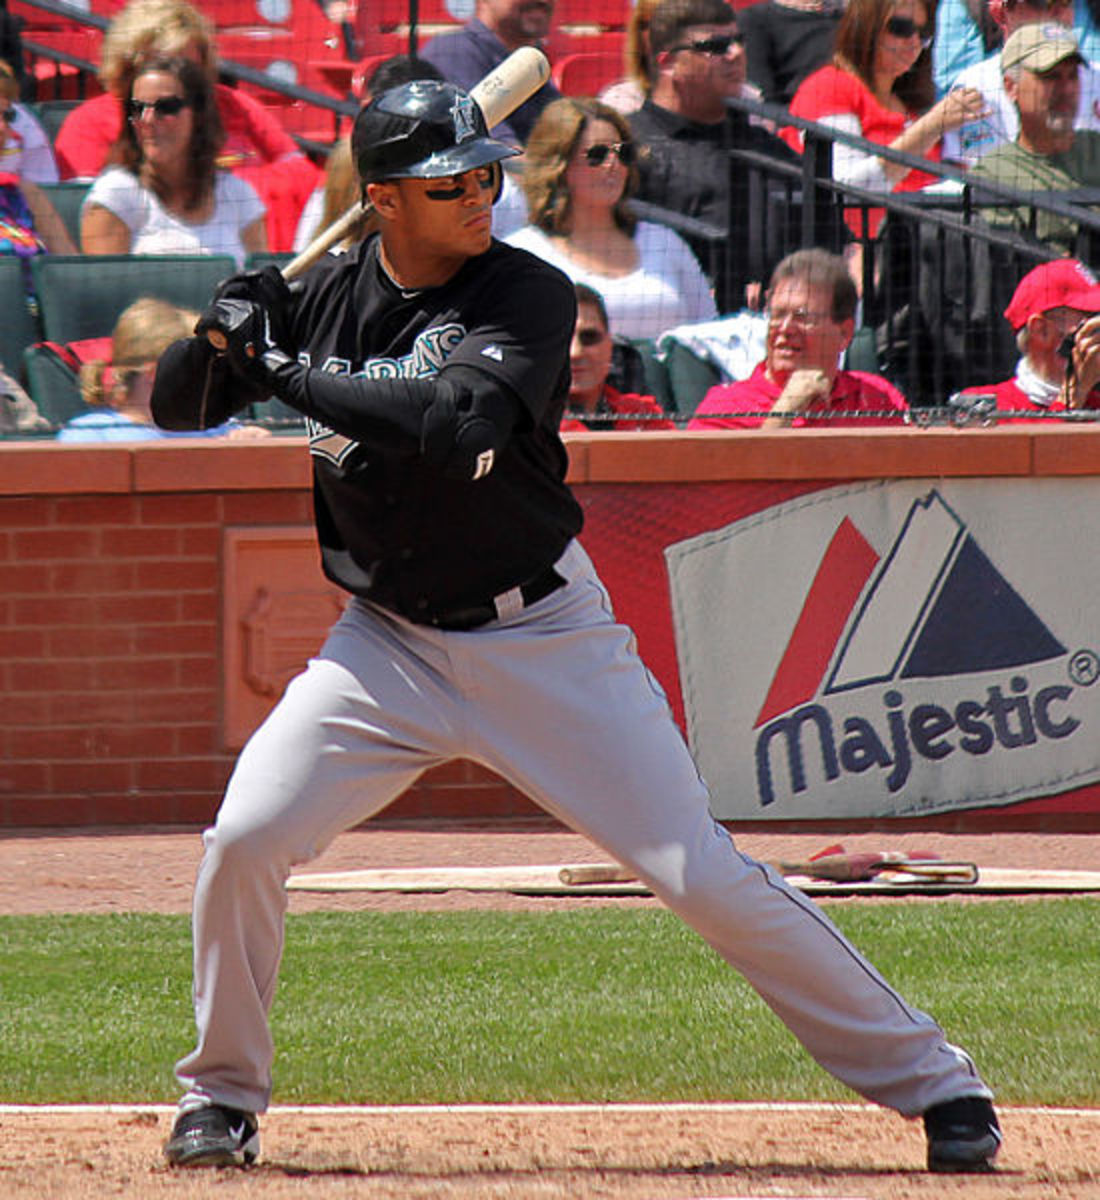 Giancarlo Stanton. At one time, one of the MLB's highest paid.